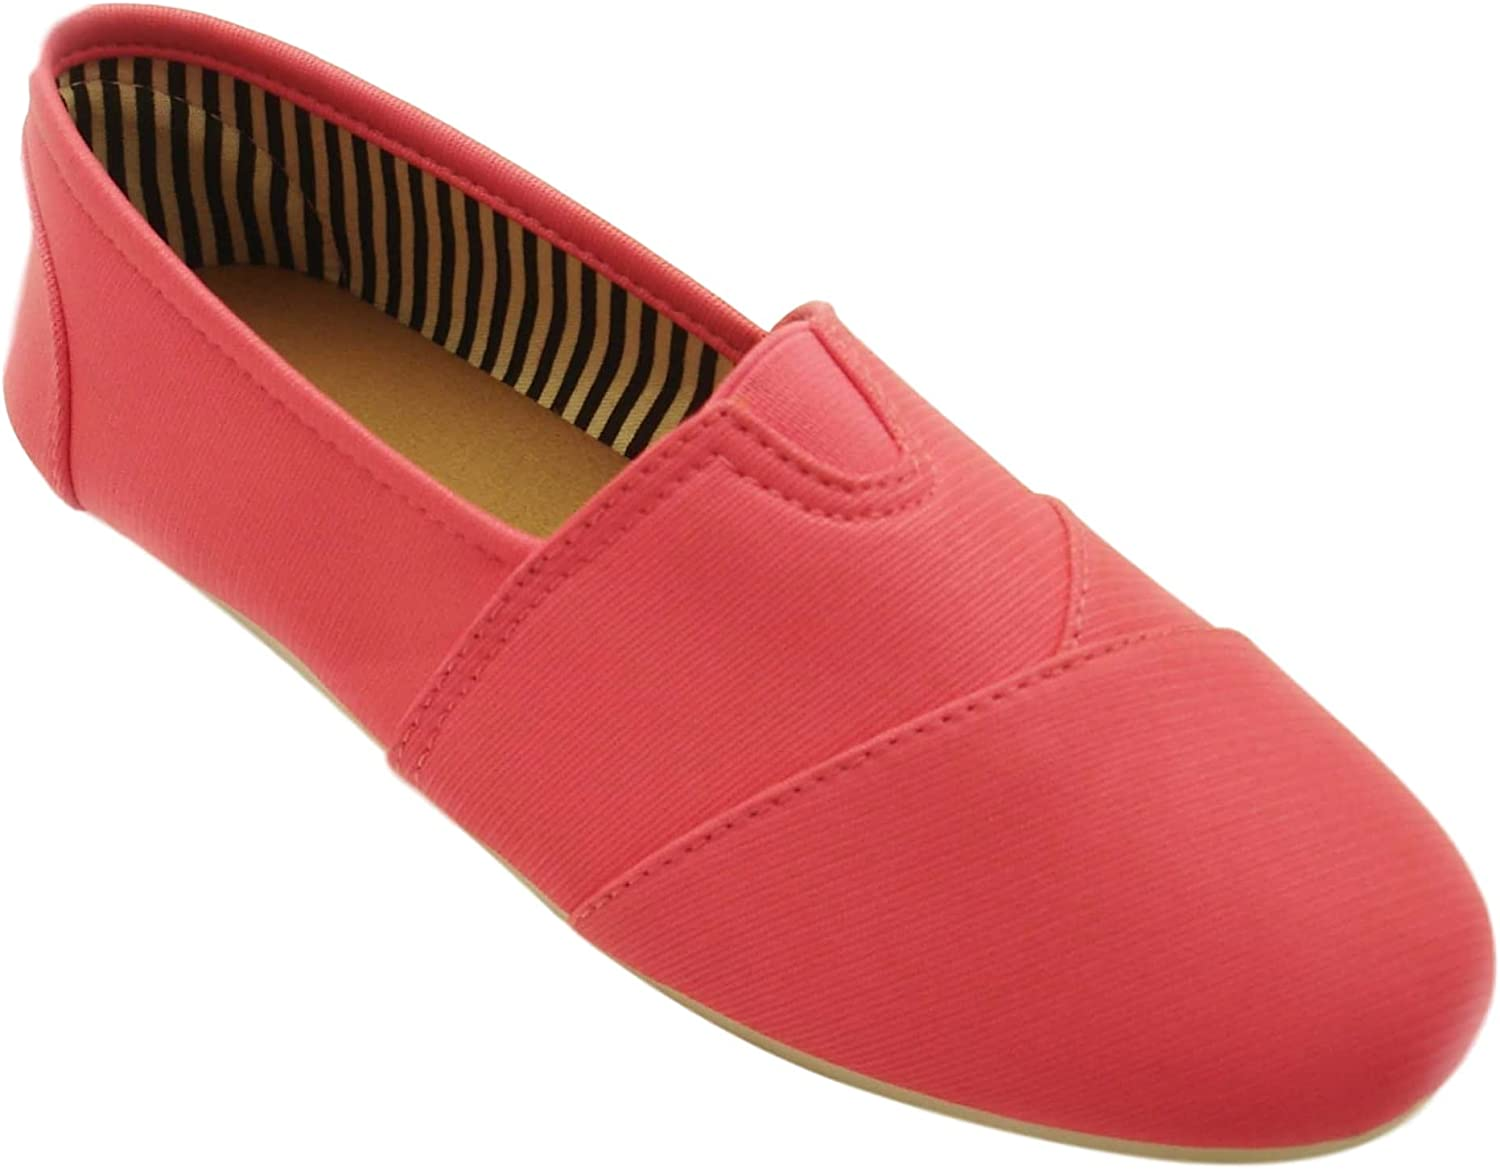 TravelNut Graduation Day Special Sale Sarah Casual Slip On Fabric Flats for Women and Girls (Assorted colors)